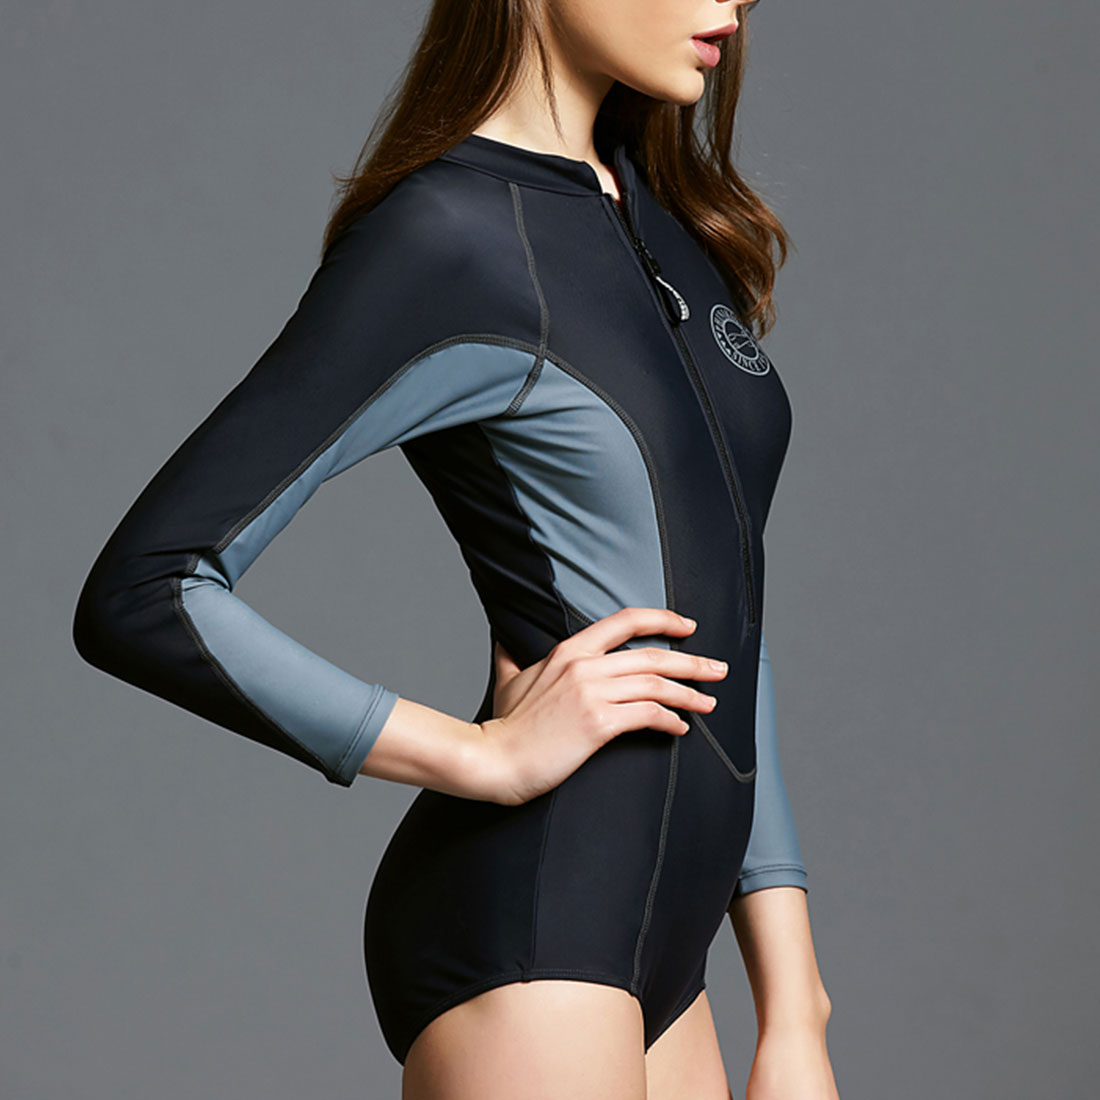 2018 solid one piece swimsuit long sleeve swimwear women bathing suit retro maillot de bain